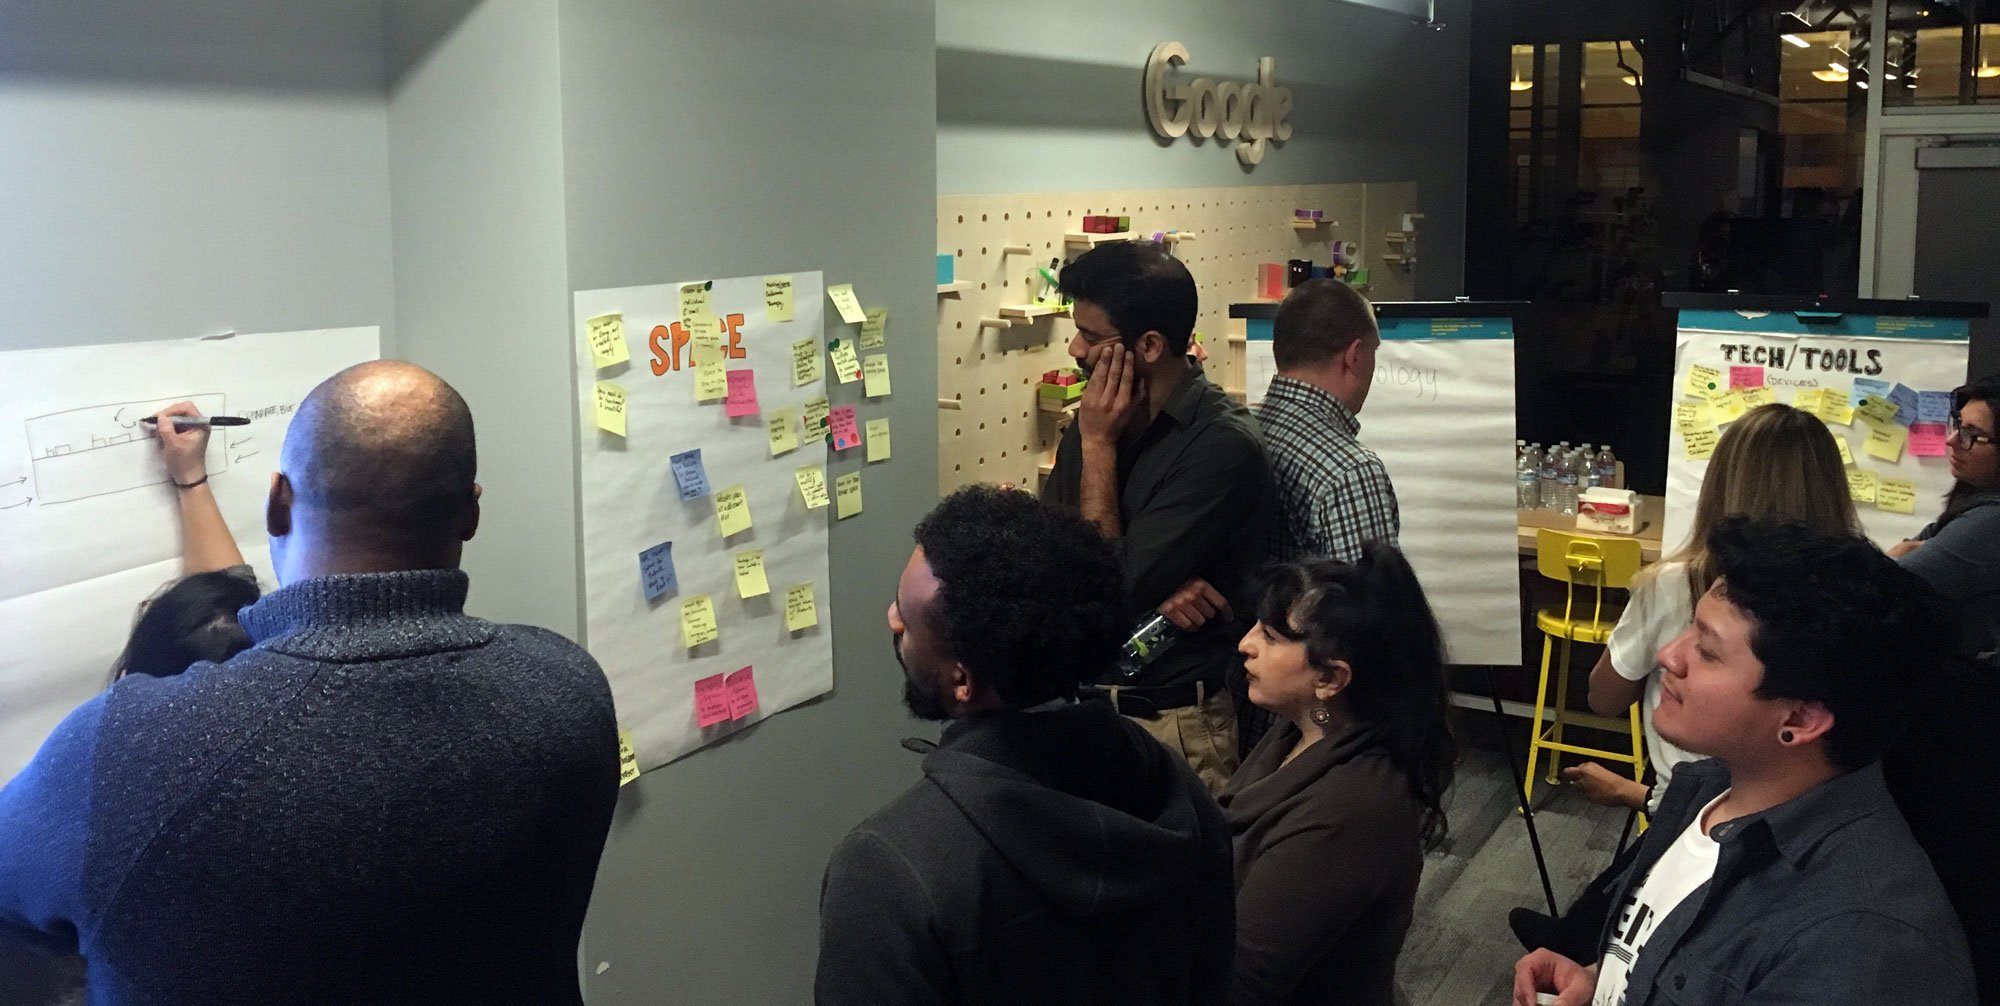 3 main user research insights